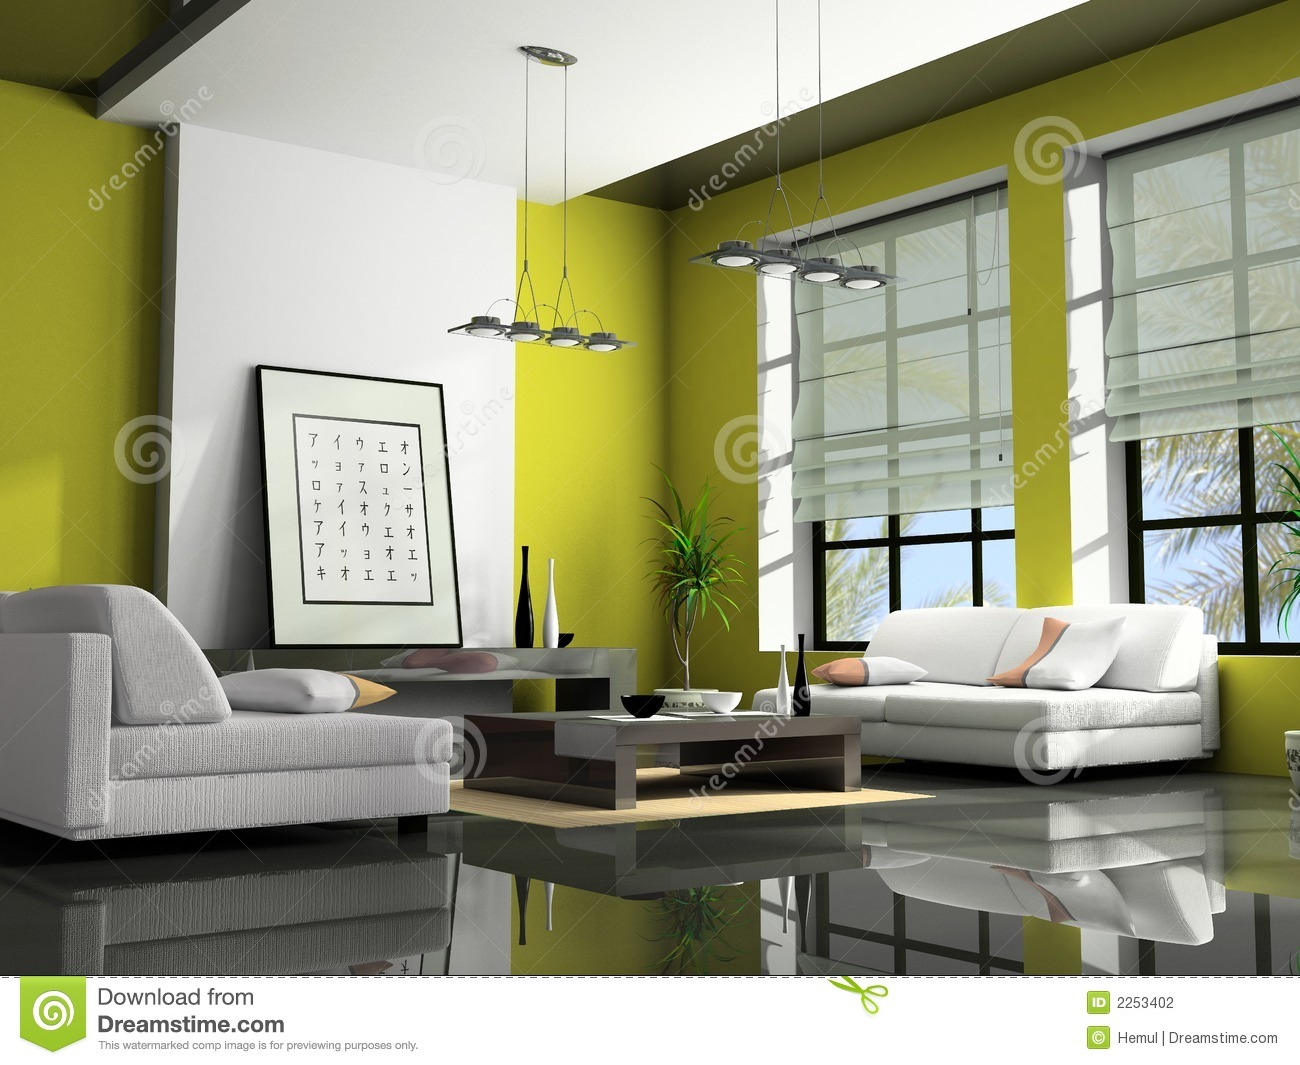 Home Interior 3d Rendering Stock Photo Image Of Furnishings 2253402